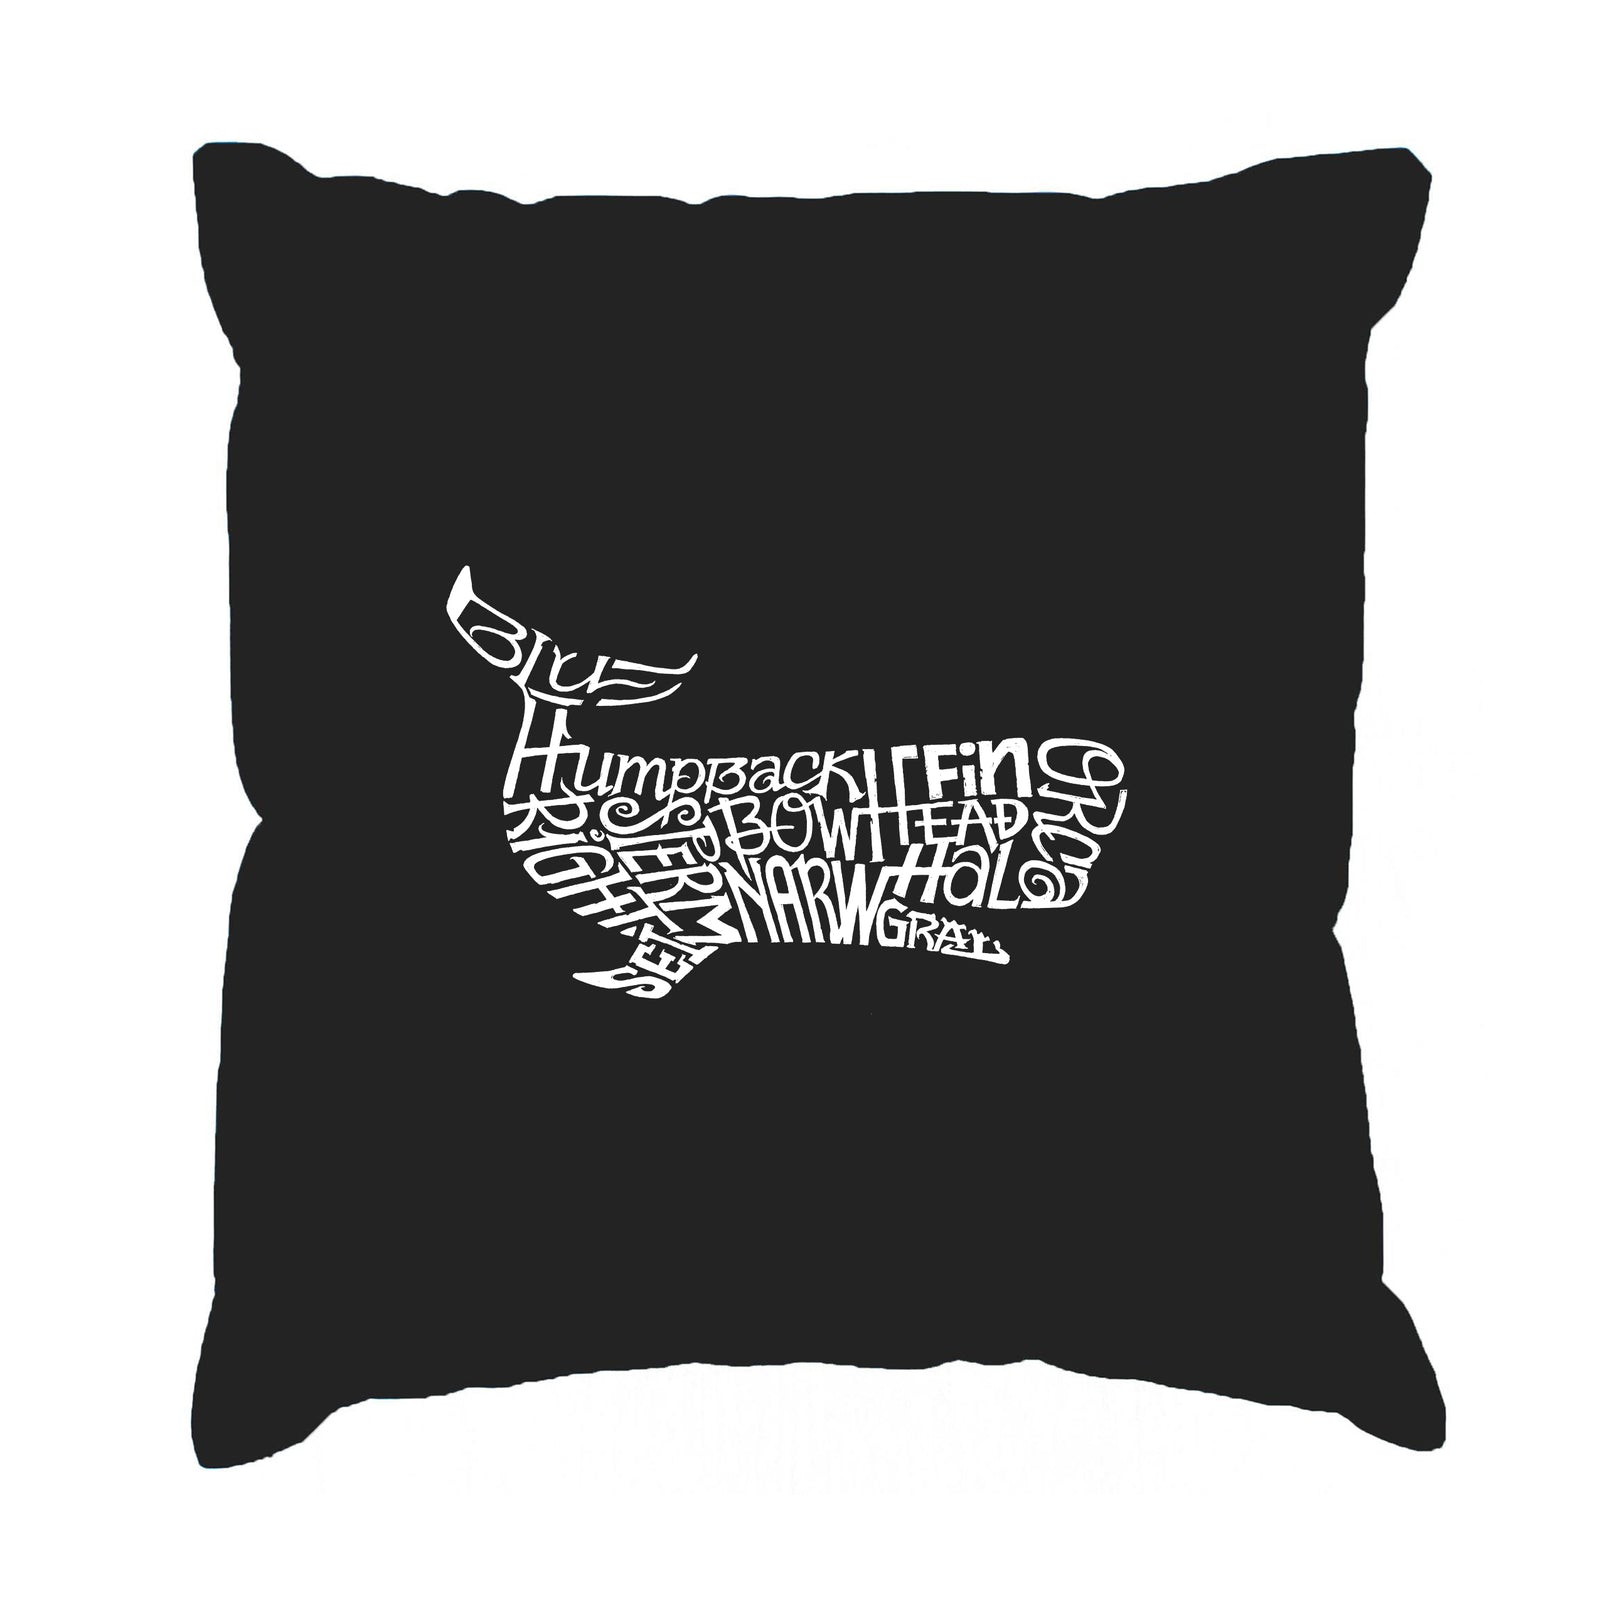 Throw Pillow Cover - Word Art - Humpbk